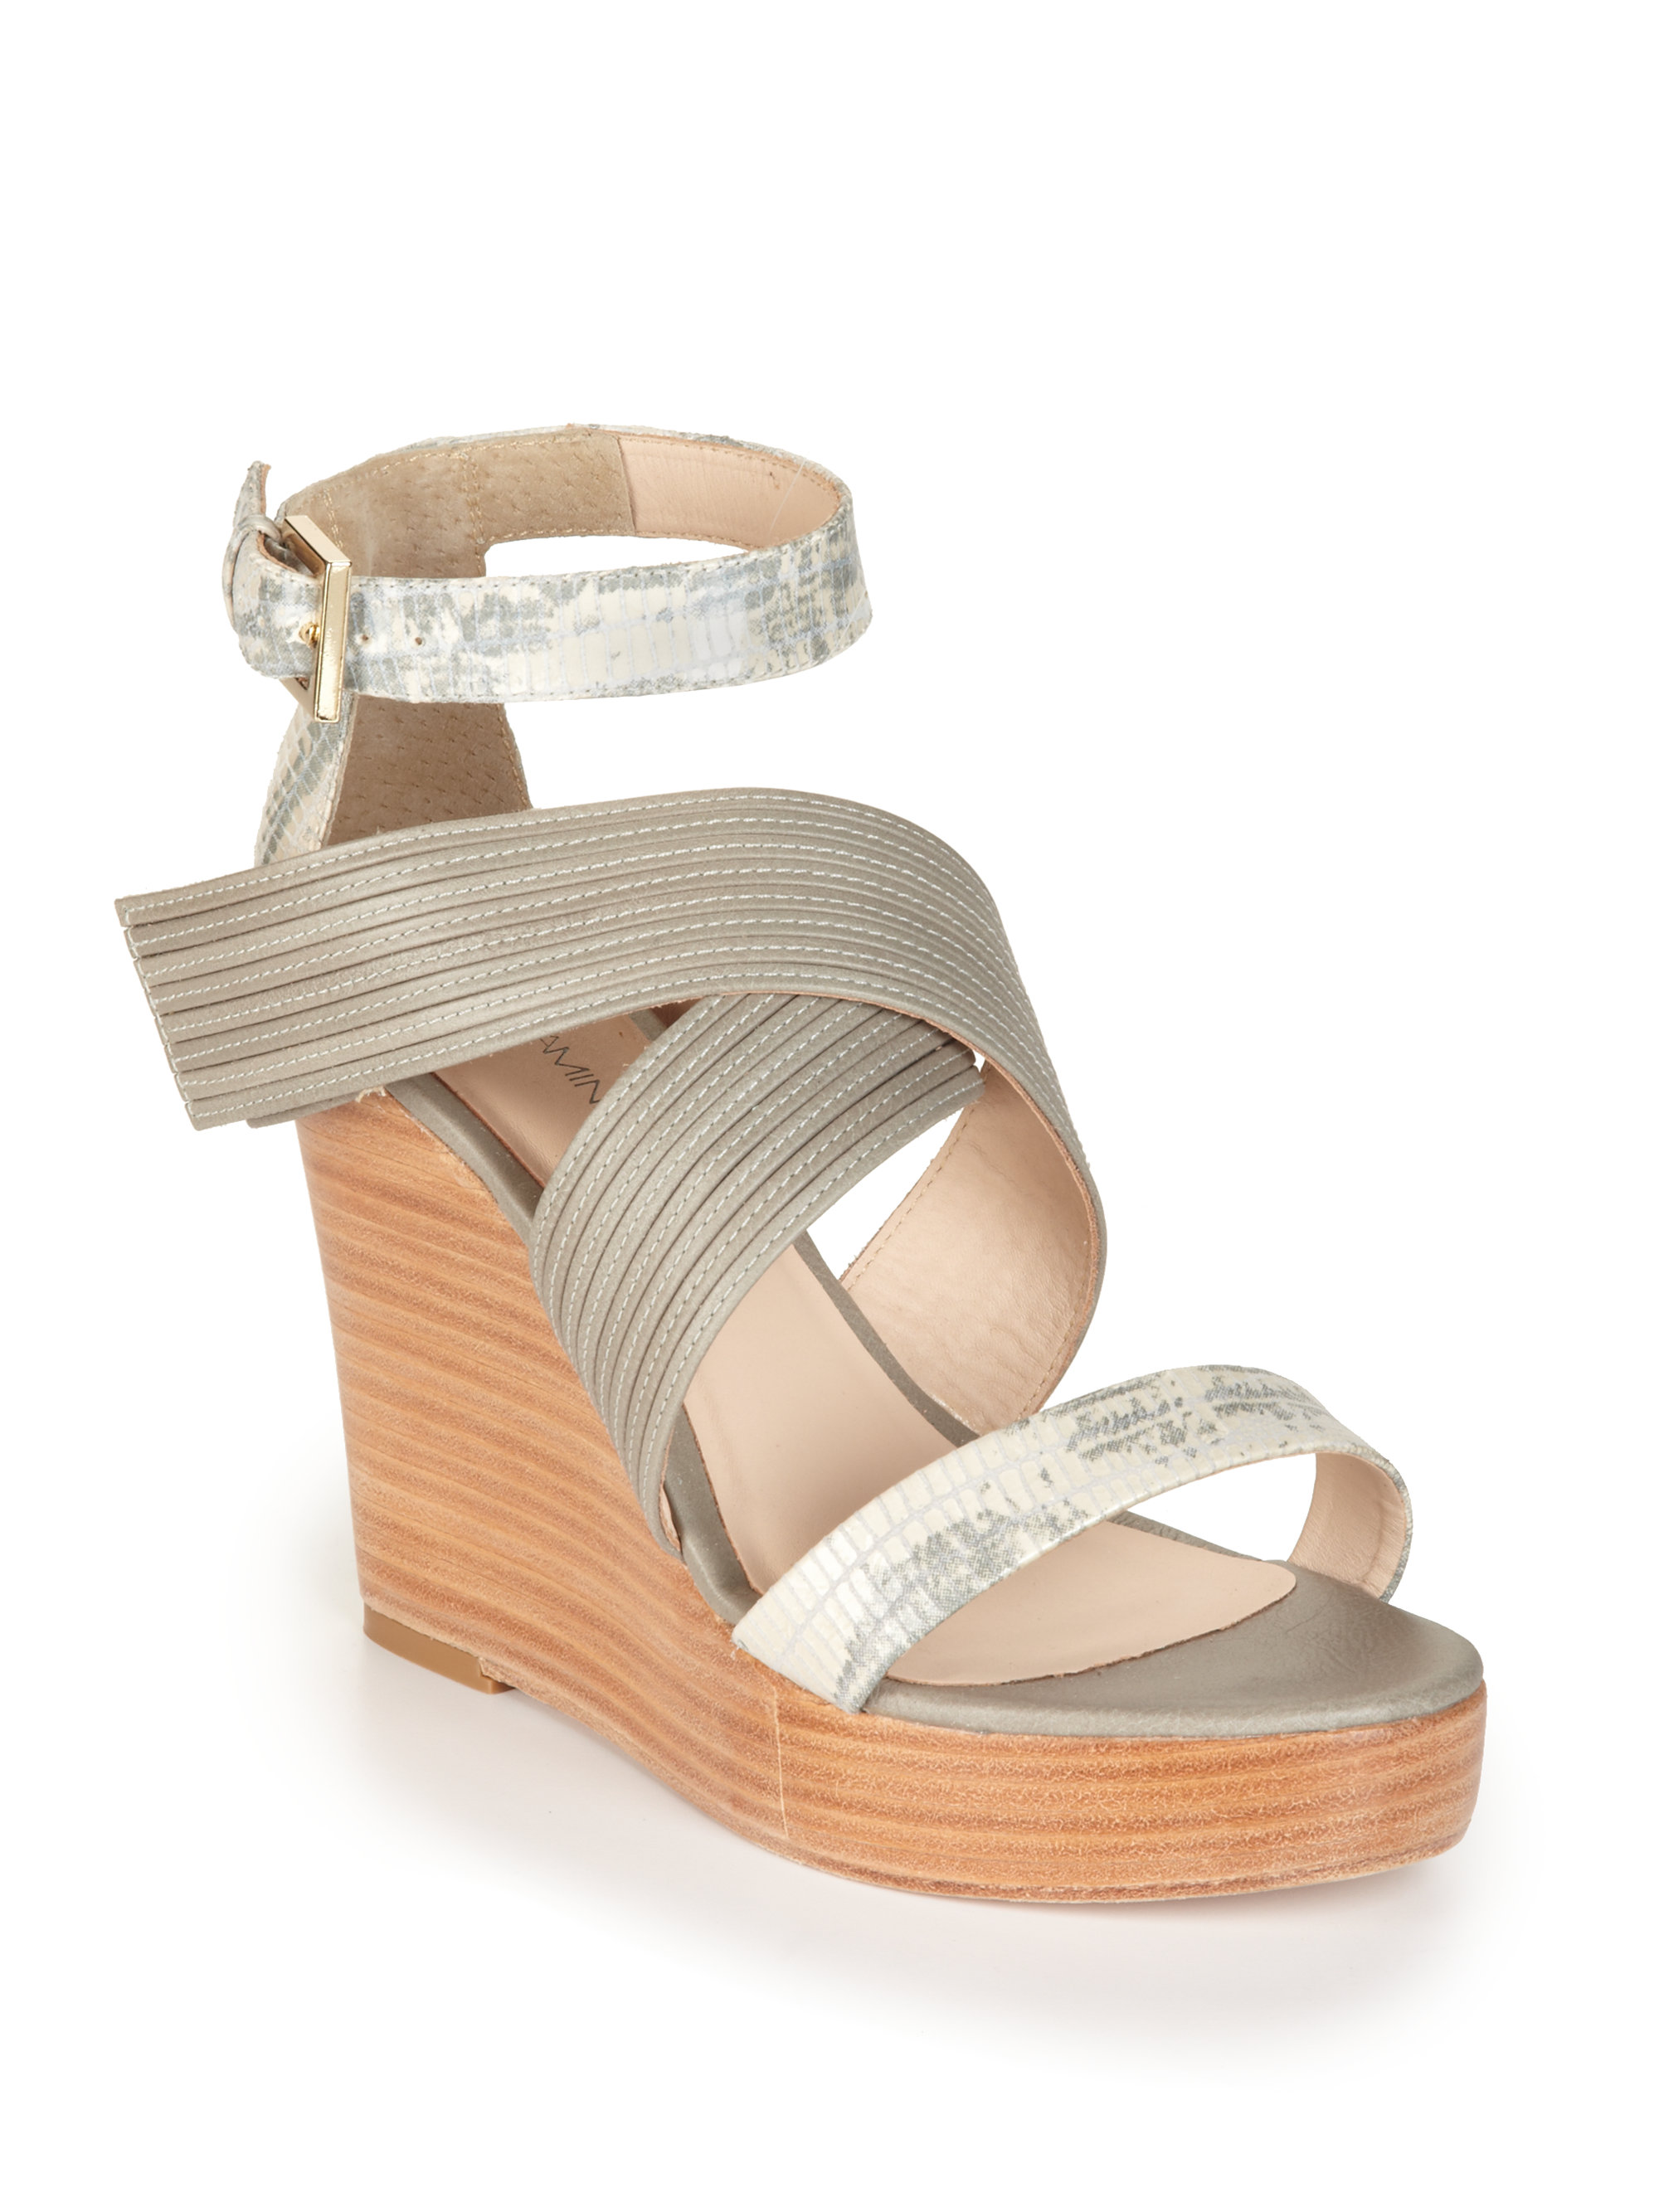 minkoff bombshell wedge sandals in gray grey lyst